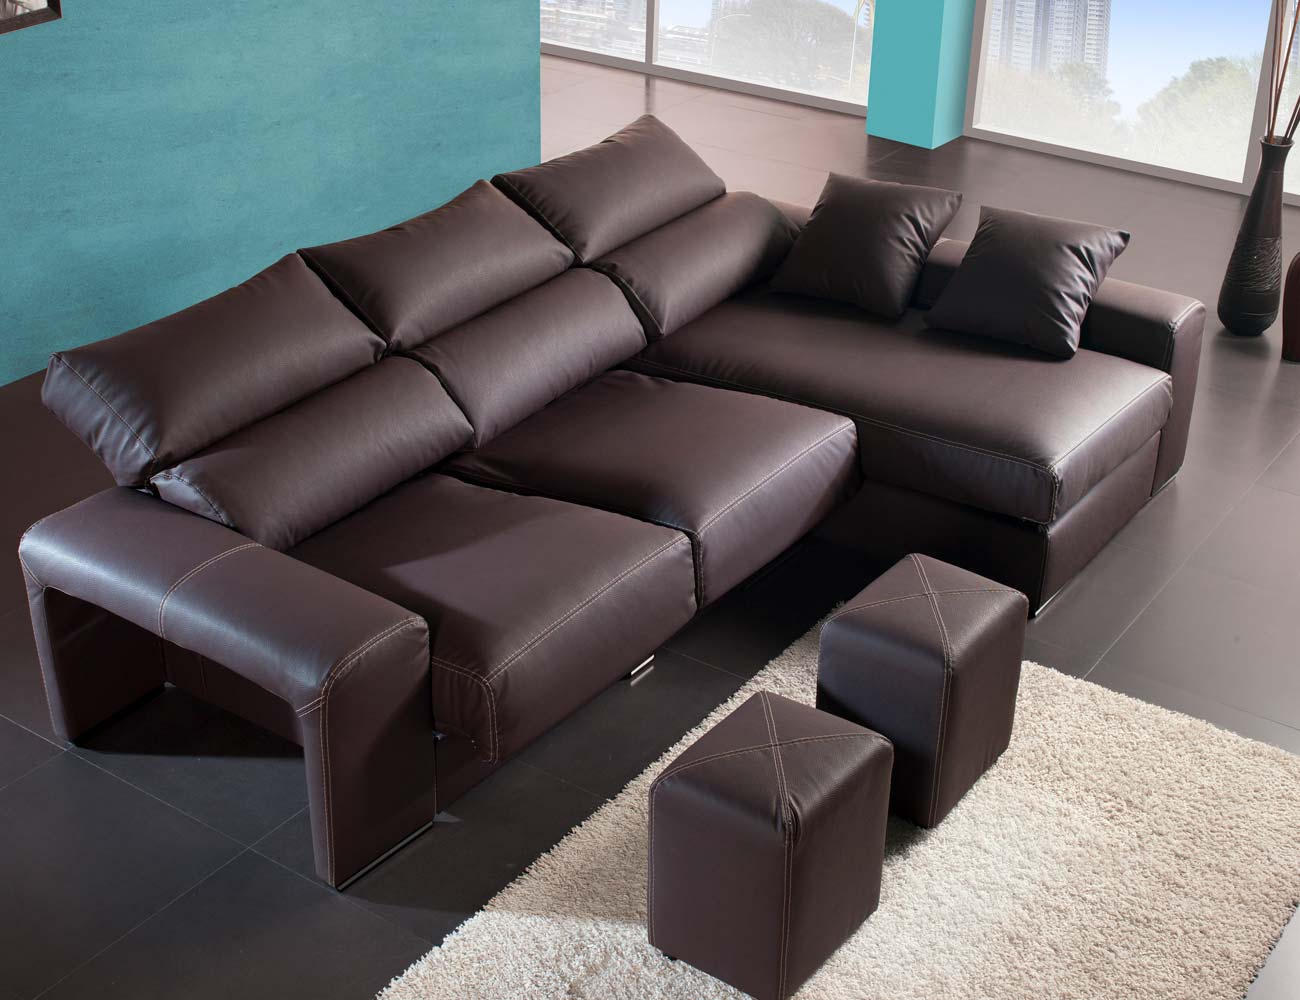 Sofa chaiselongue moderno polipiel chocolate poufs taburetes11